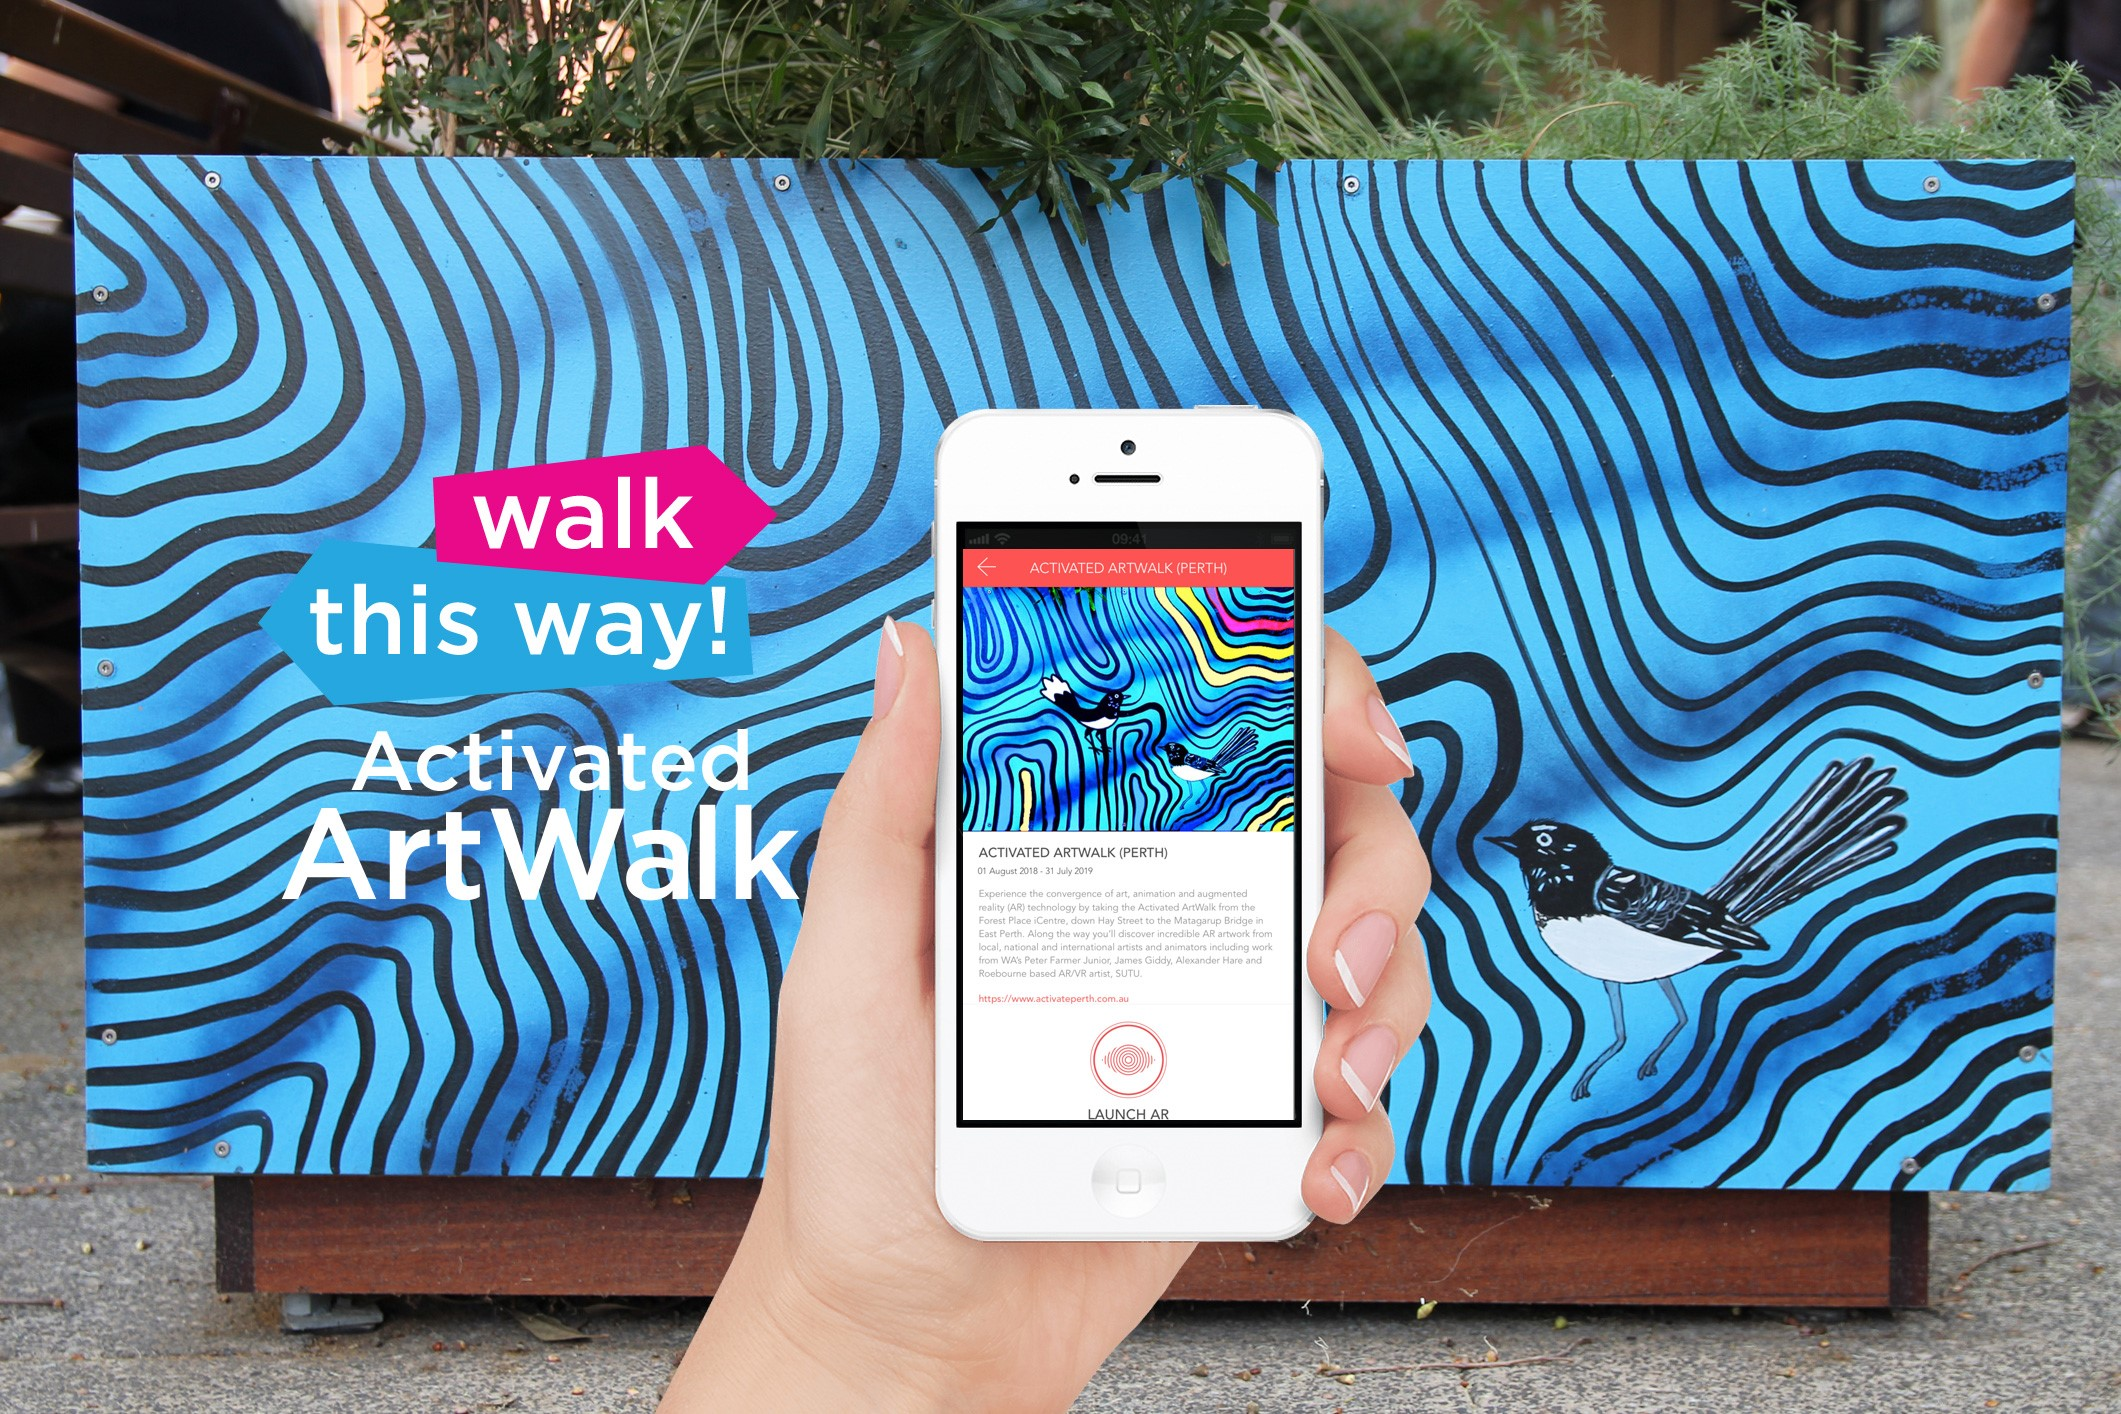 Person holding phone with Art Walk app on it in front of artwork